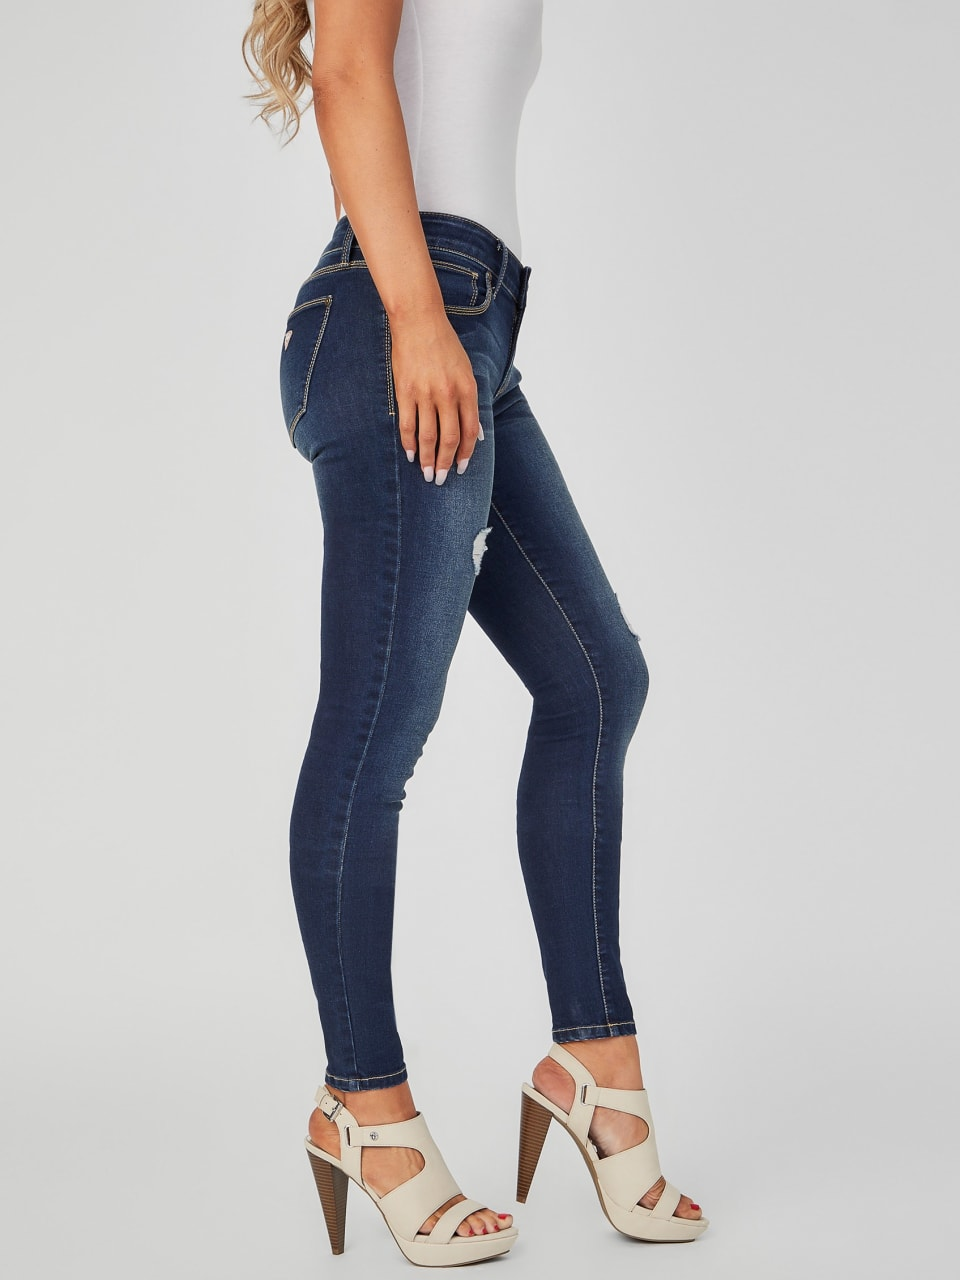 GUESS-Factory-Women-039-s-Sienna-Distressed-Curvy-Skinny-Jeans thumbnail 7